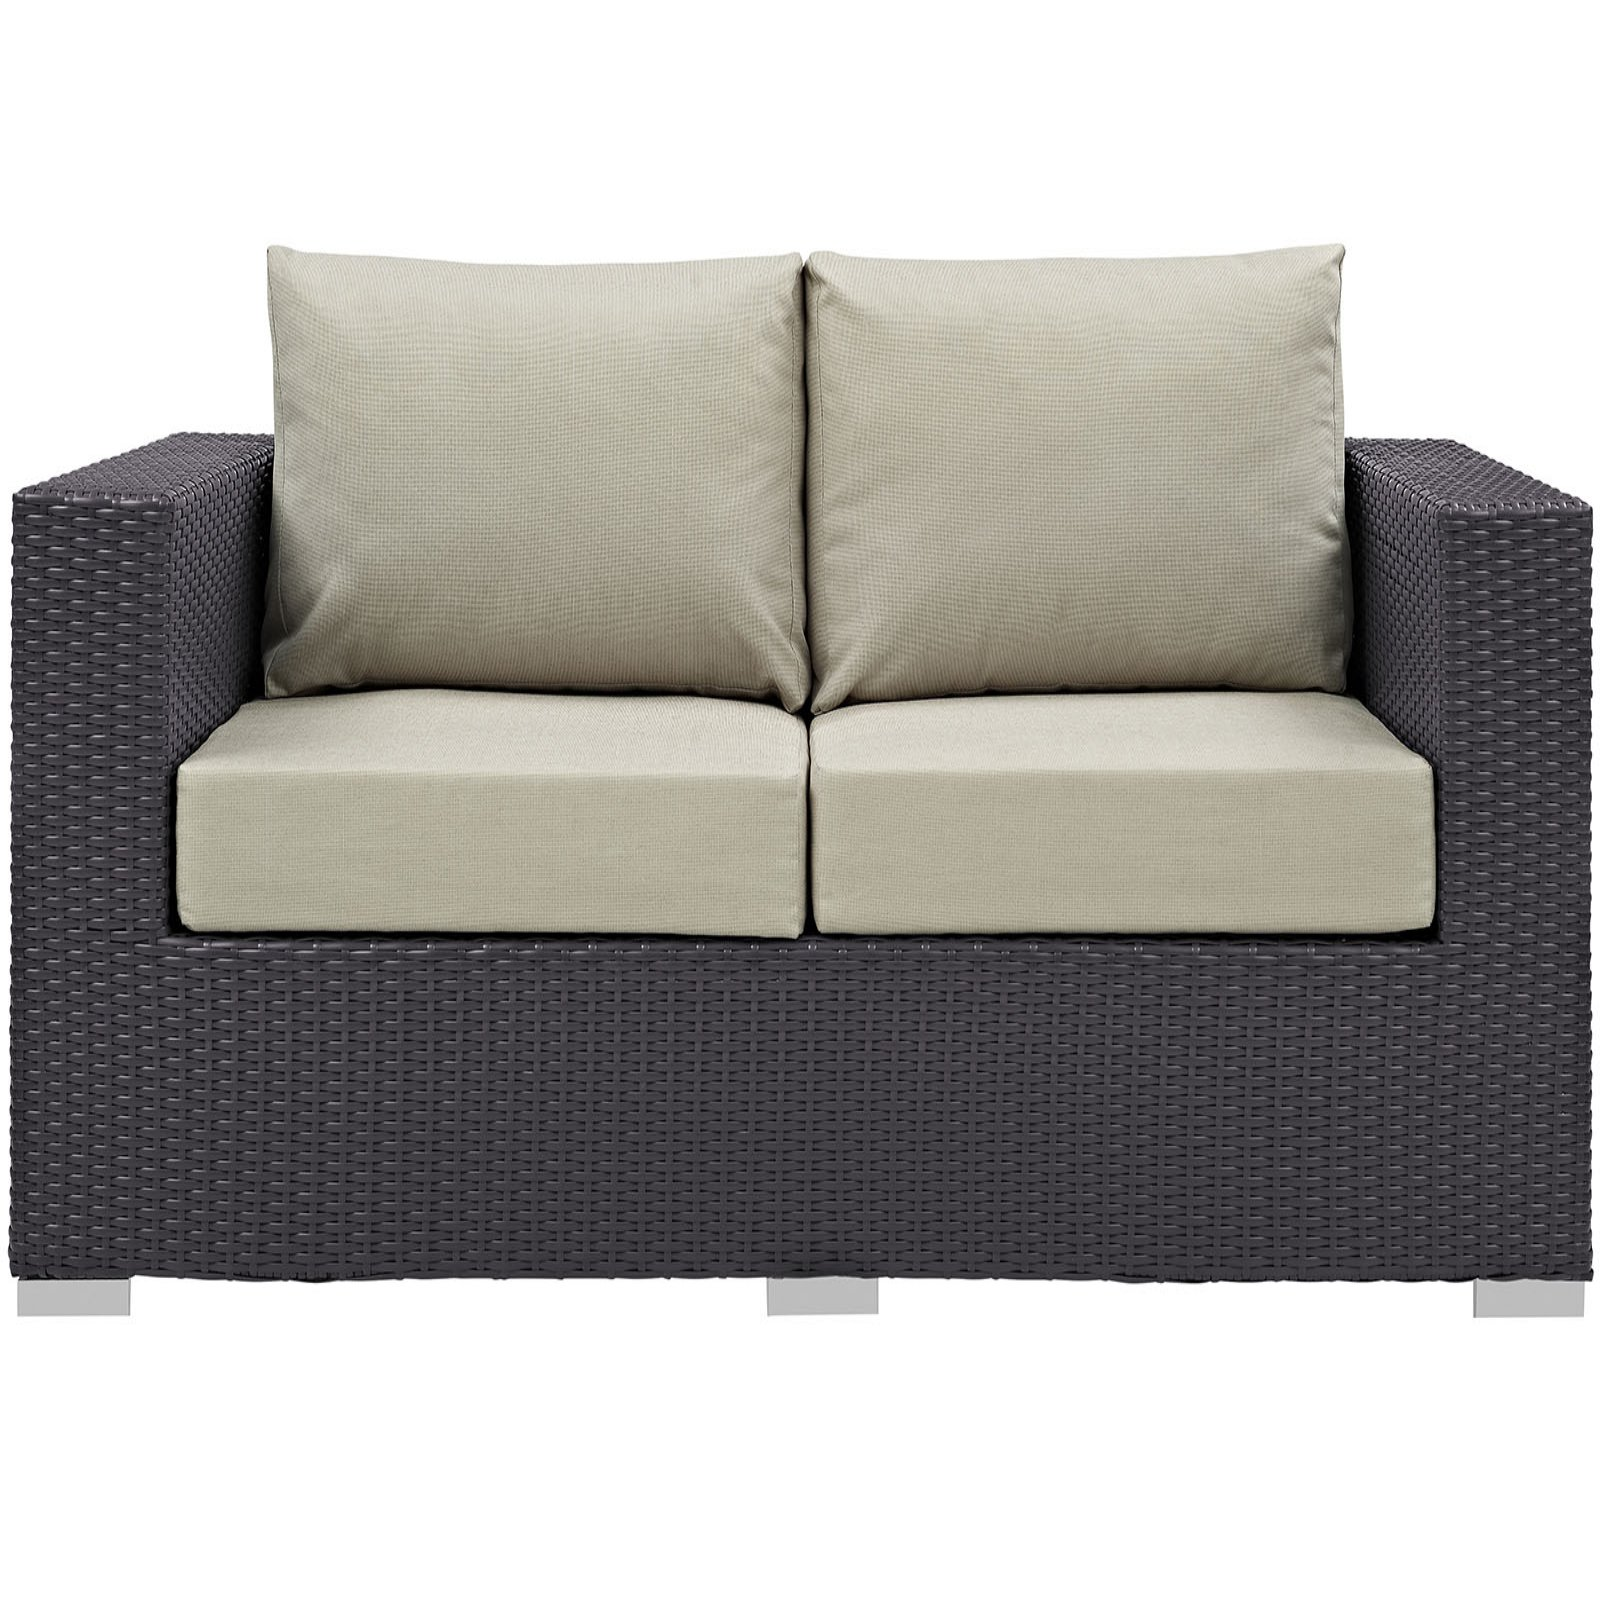 Modway Convene Outdoor Patio Loveseat, Multiple Colors